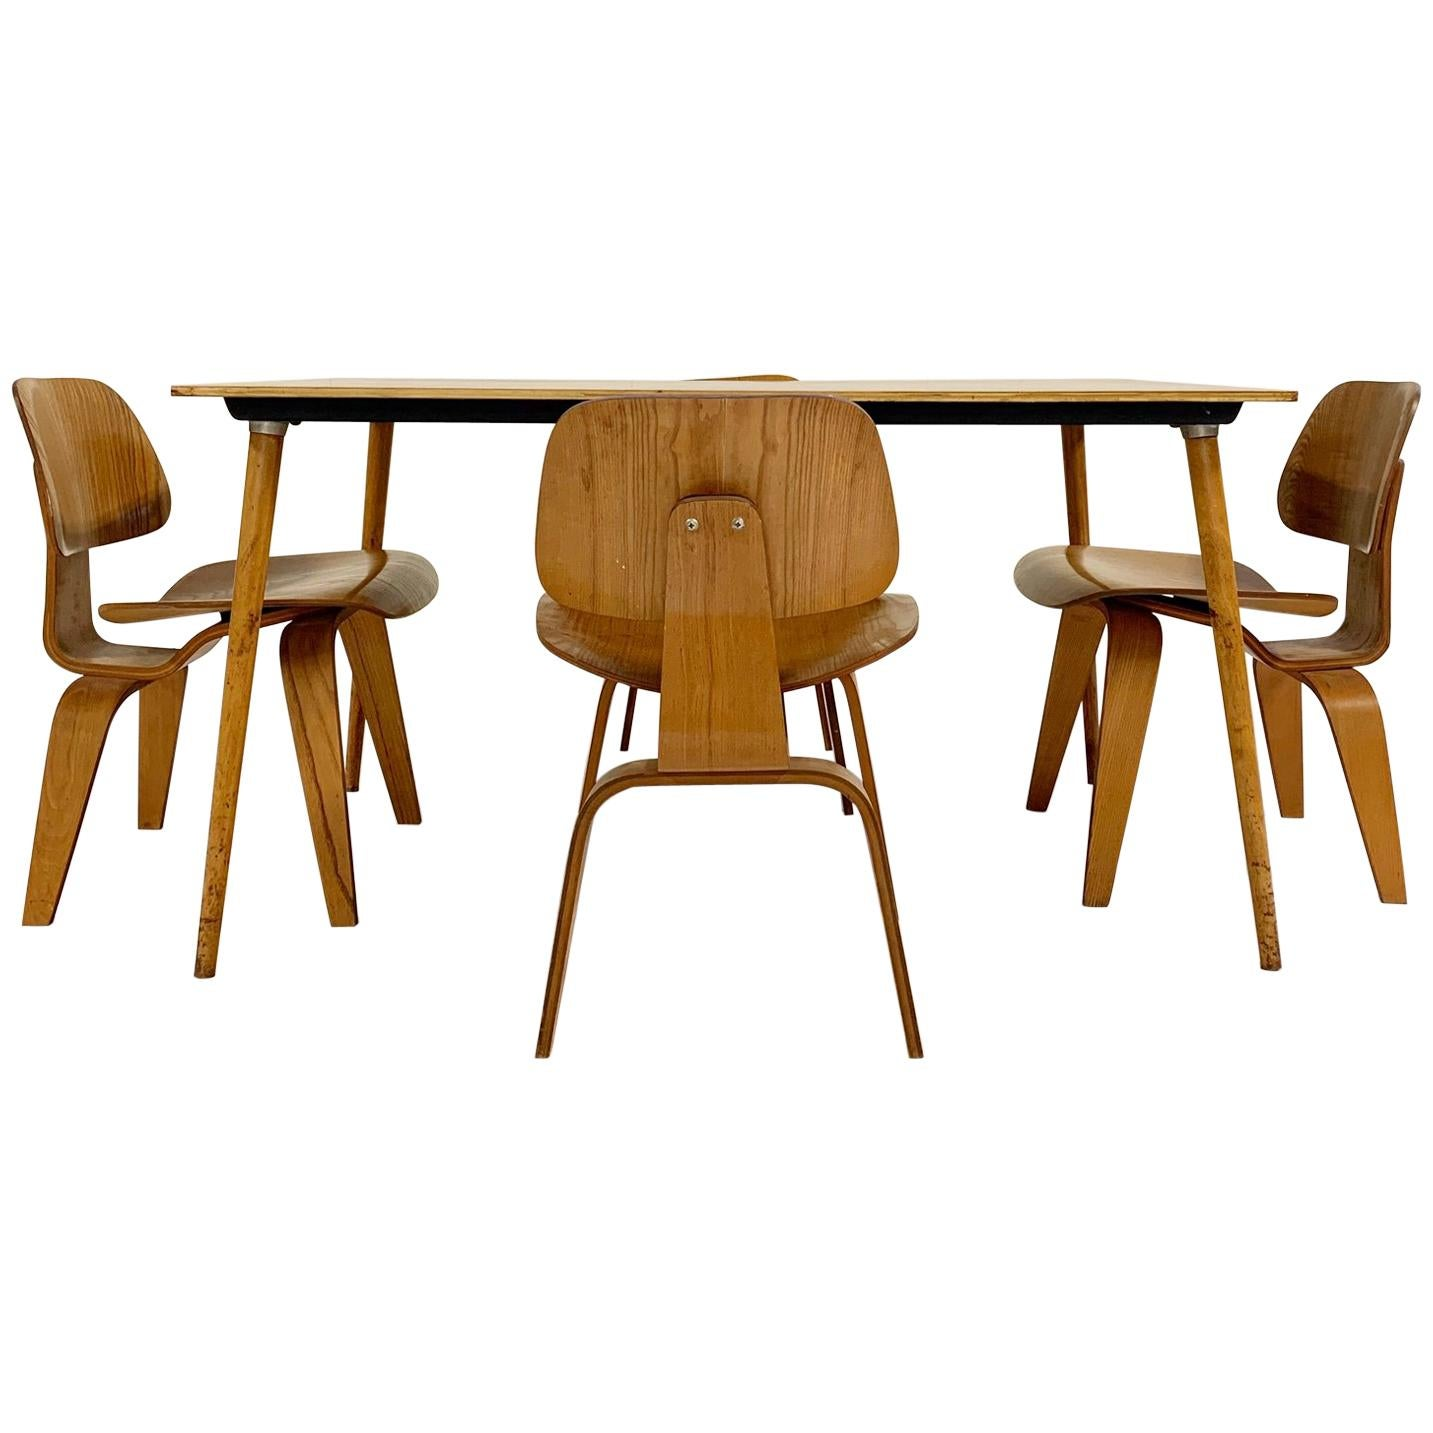 1950 Charles and Ray Eames for Herman Miller DTW-3 Table and Set of 4 DCW Chairs